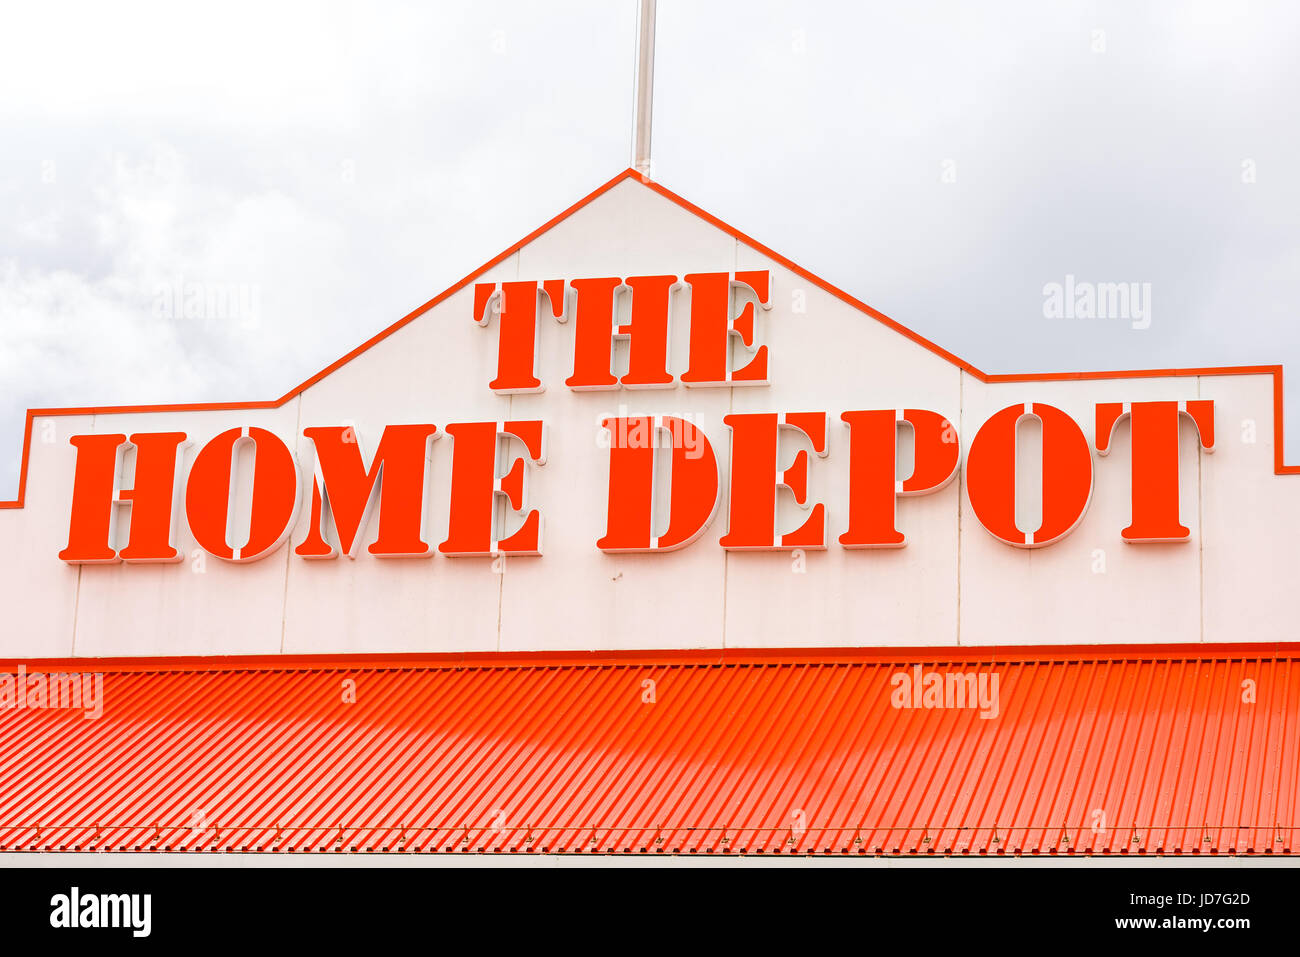 The Home Depot Brand Logo On Building Exterior Stock Photo